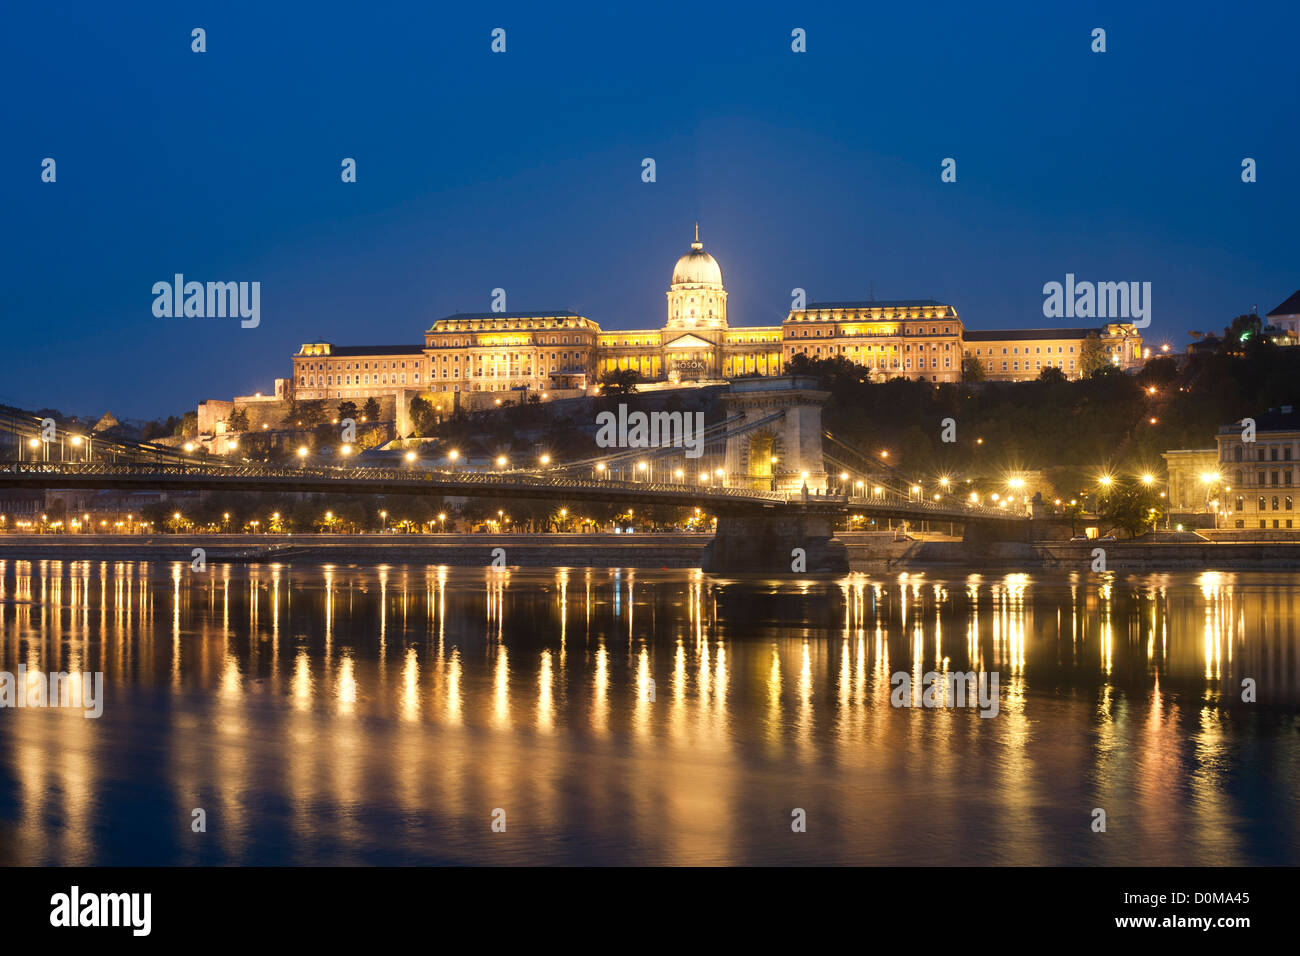 Dawn view of Buda Castle and the Széchenyi Chain Bridge over the Danube River in Budapest, the capital of Hungary. - Stock Image